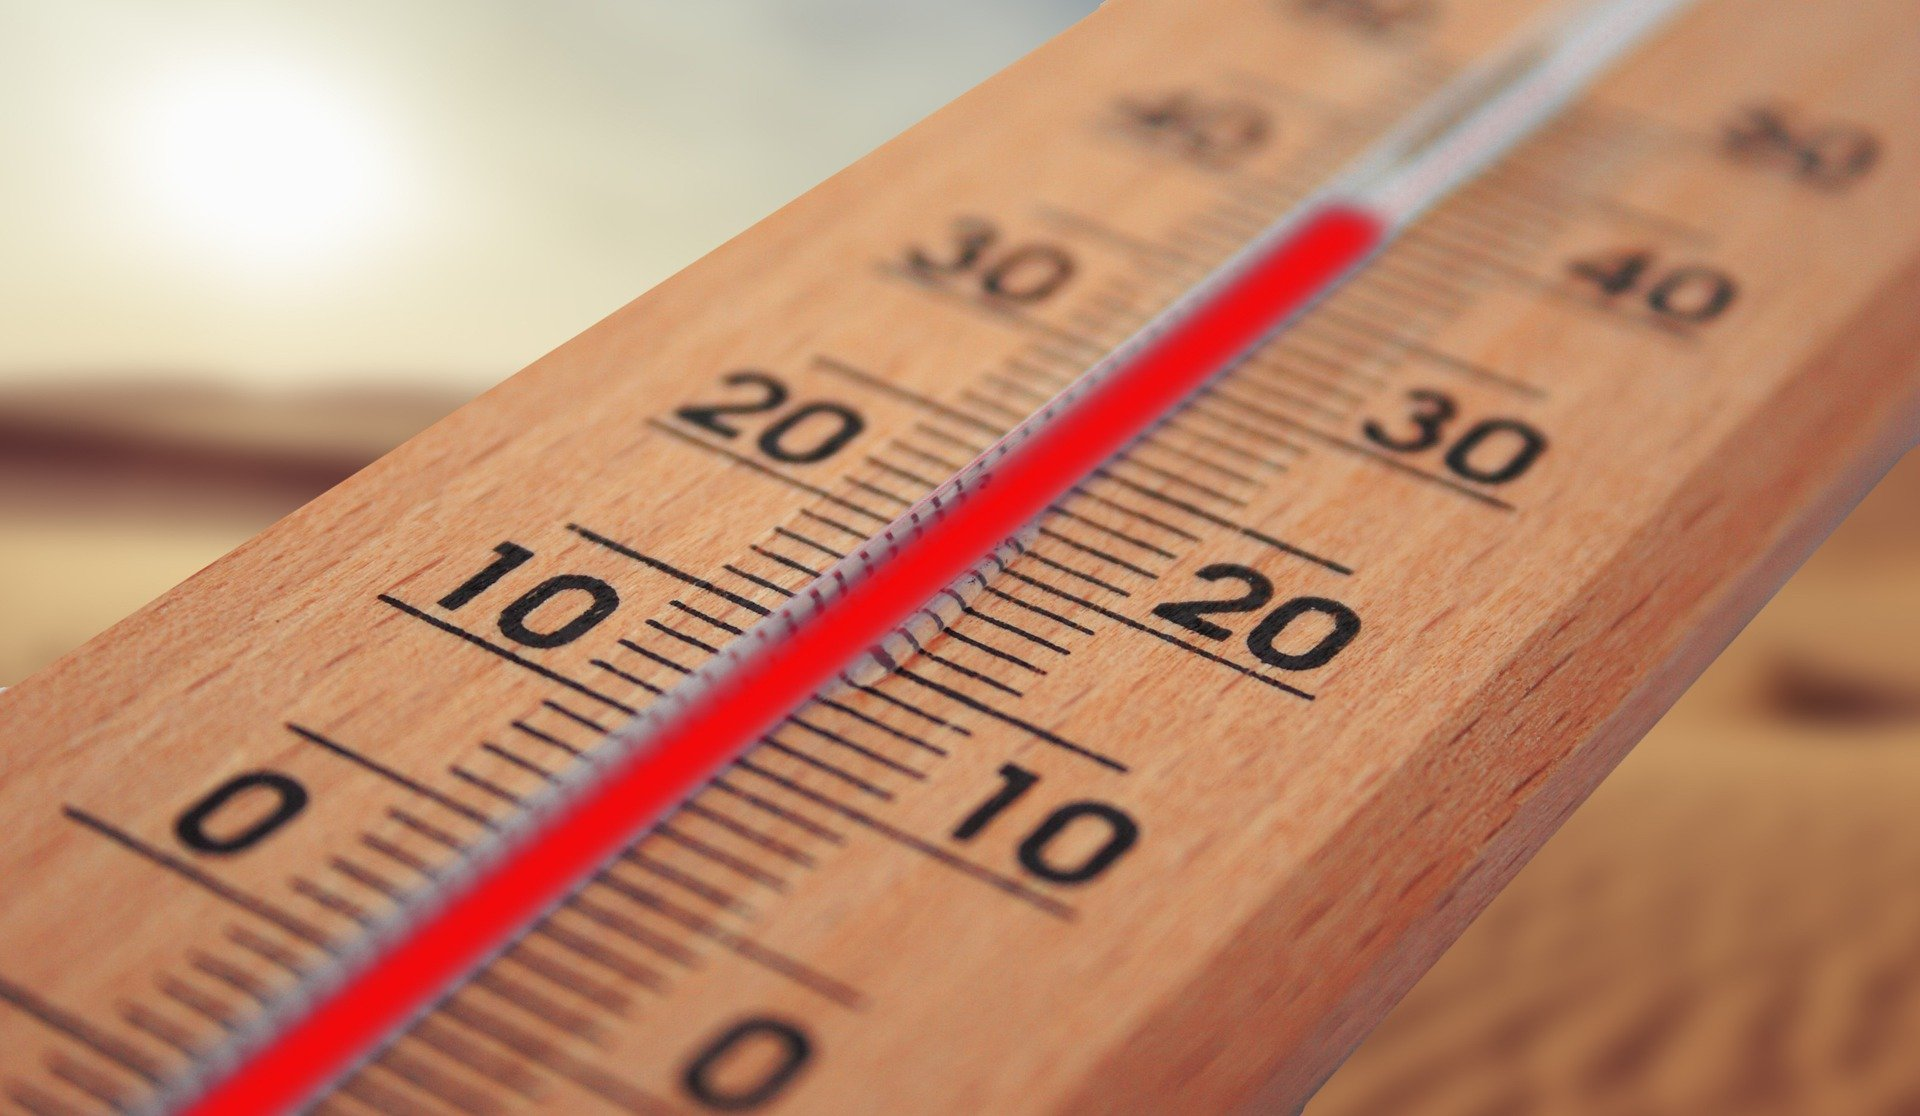 thermometer-4294021_1920